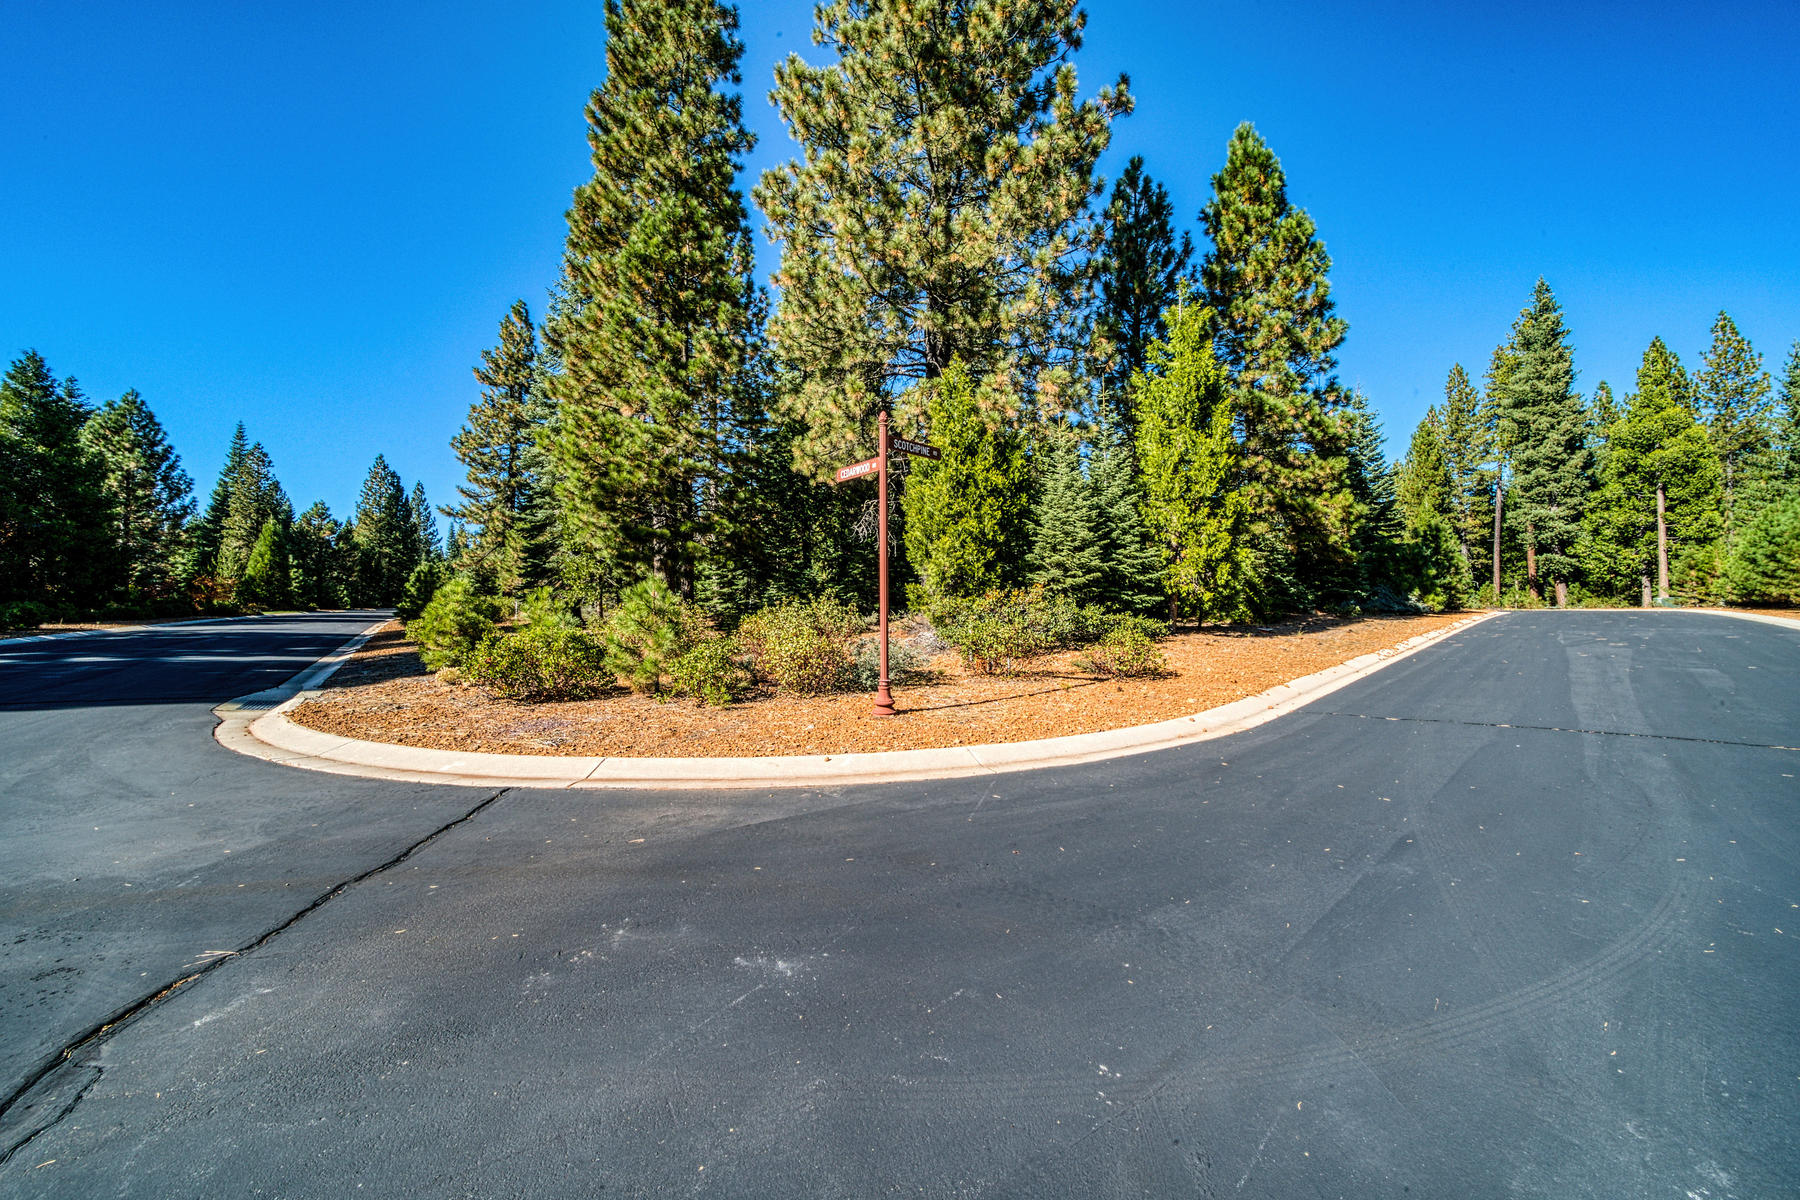 Additional photo for property listing at 000 Foxwood Drive Lake Almanor California 96137 000 Foxwood Drive Westwood, California 96137 United States